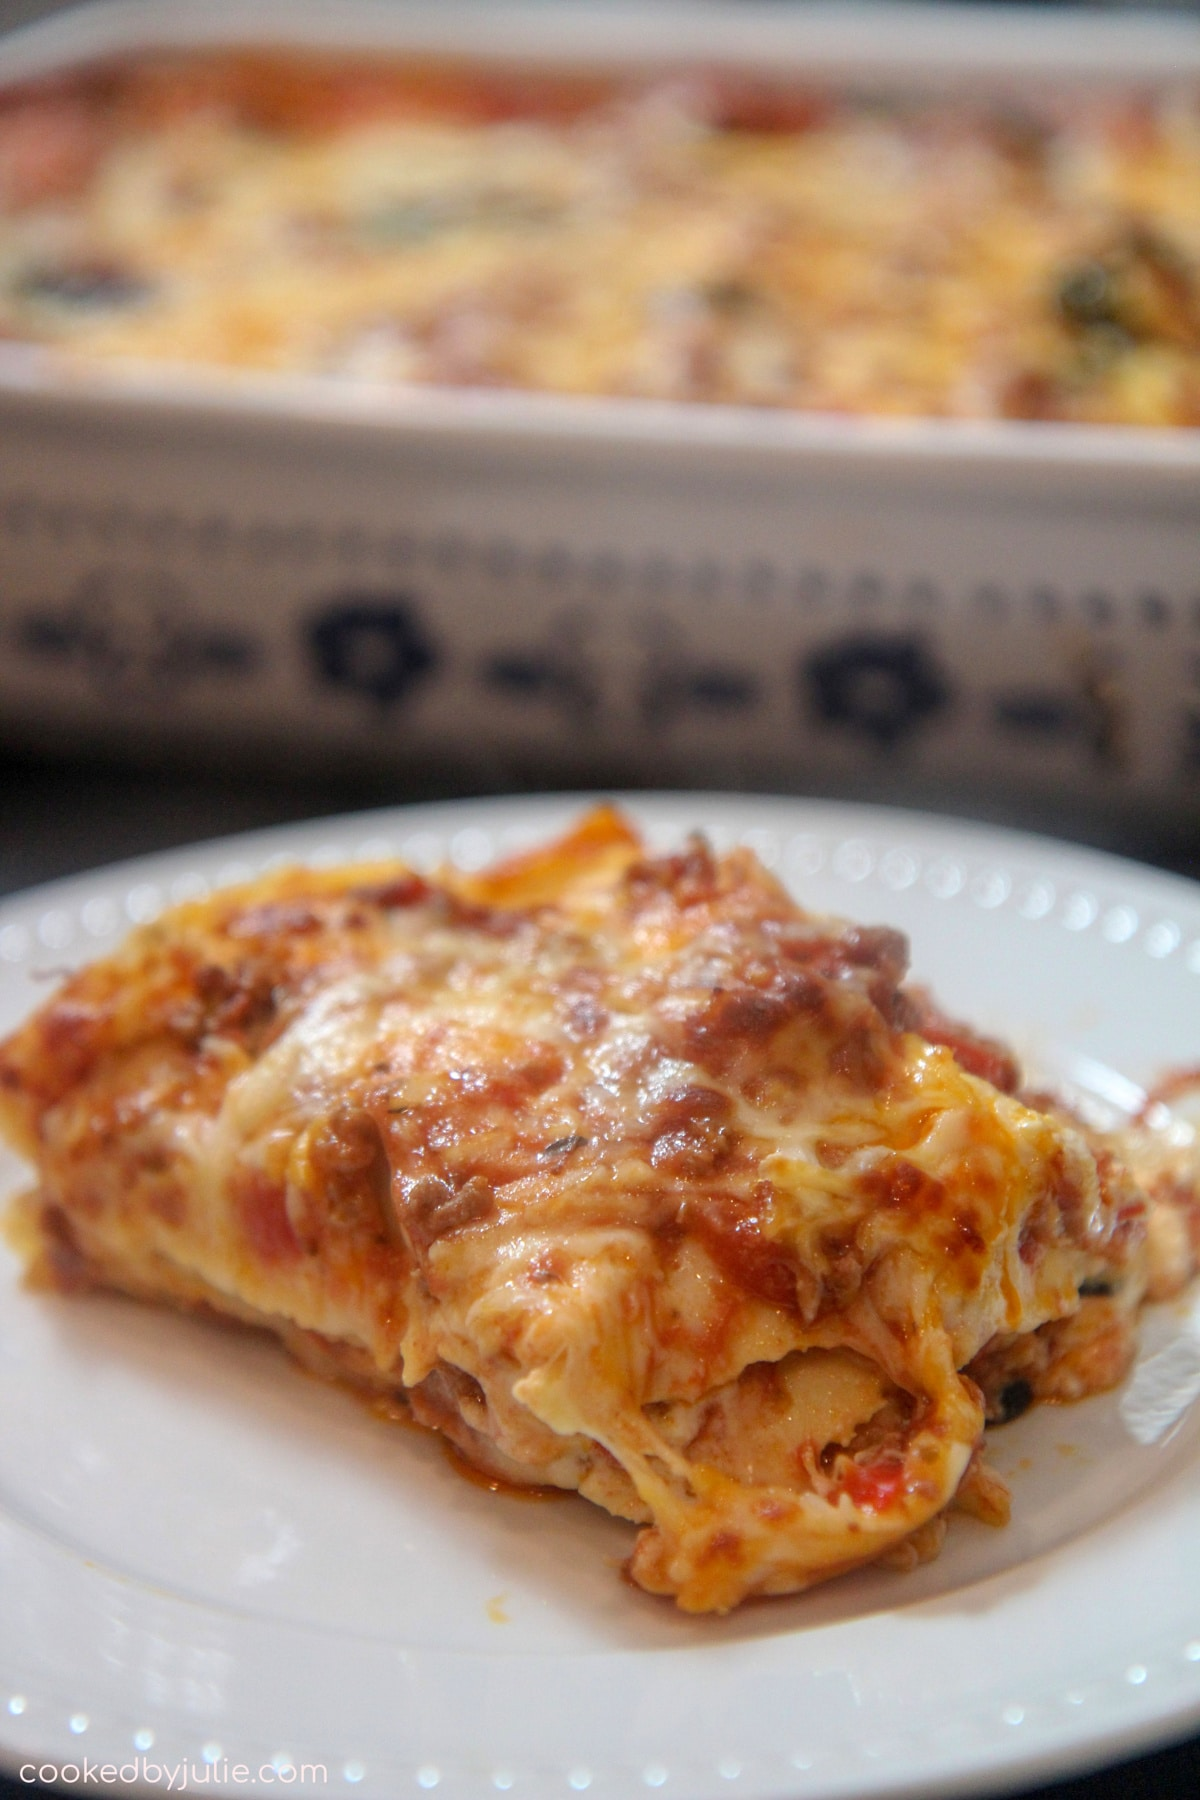 a serving of lasagna on a plate